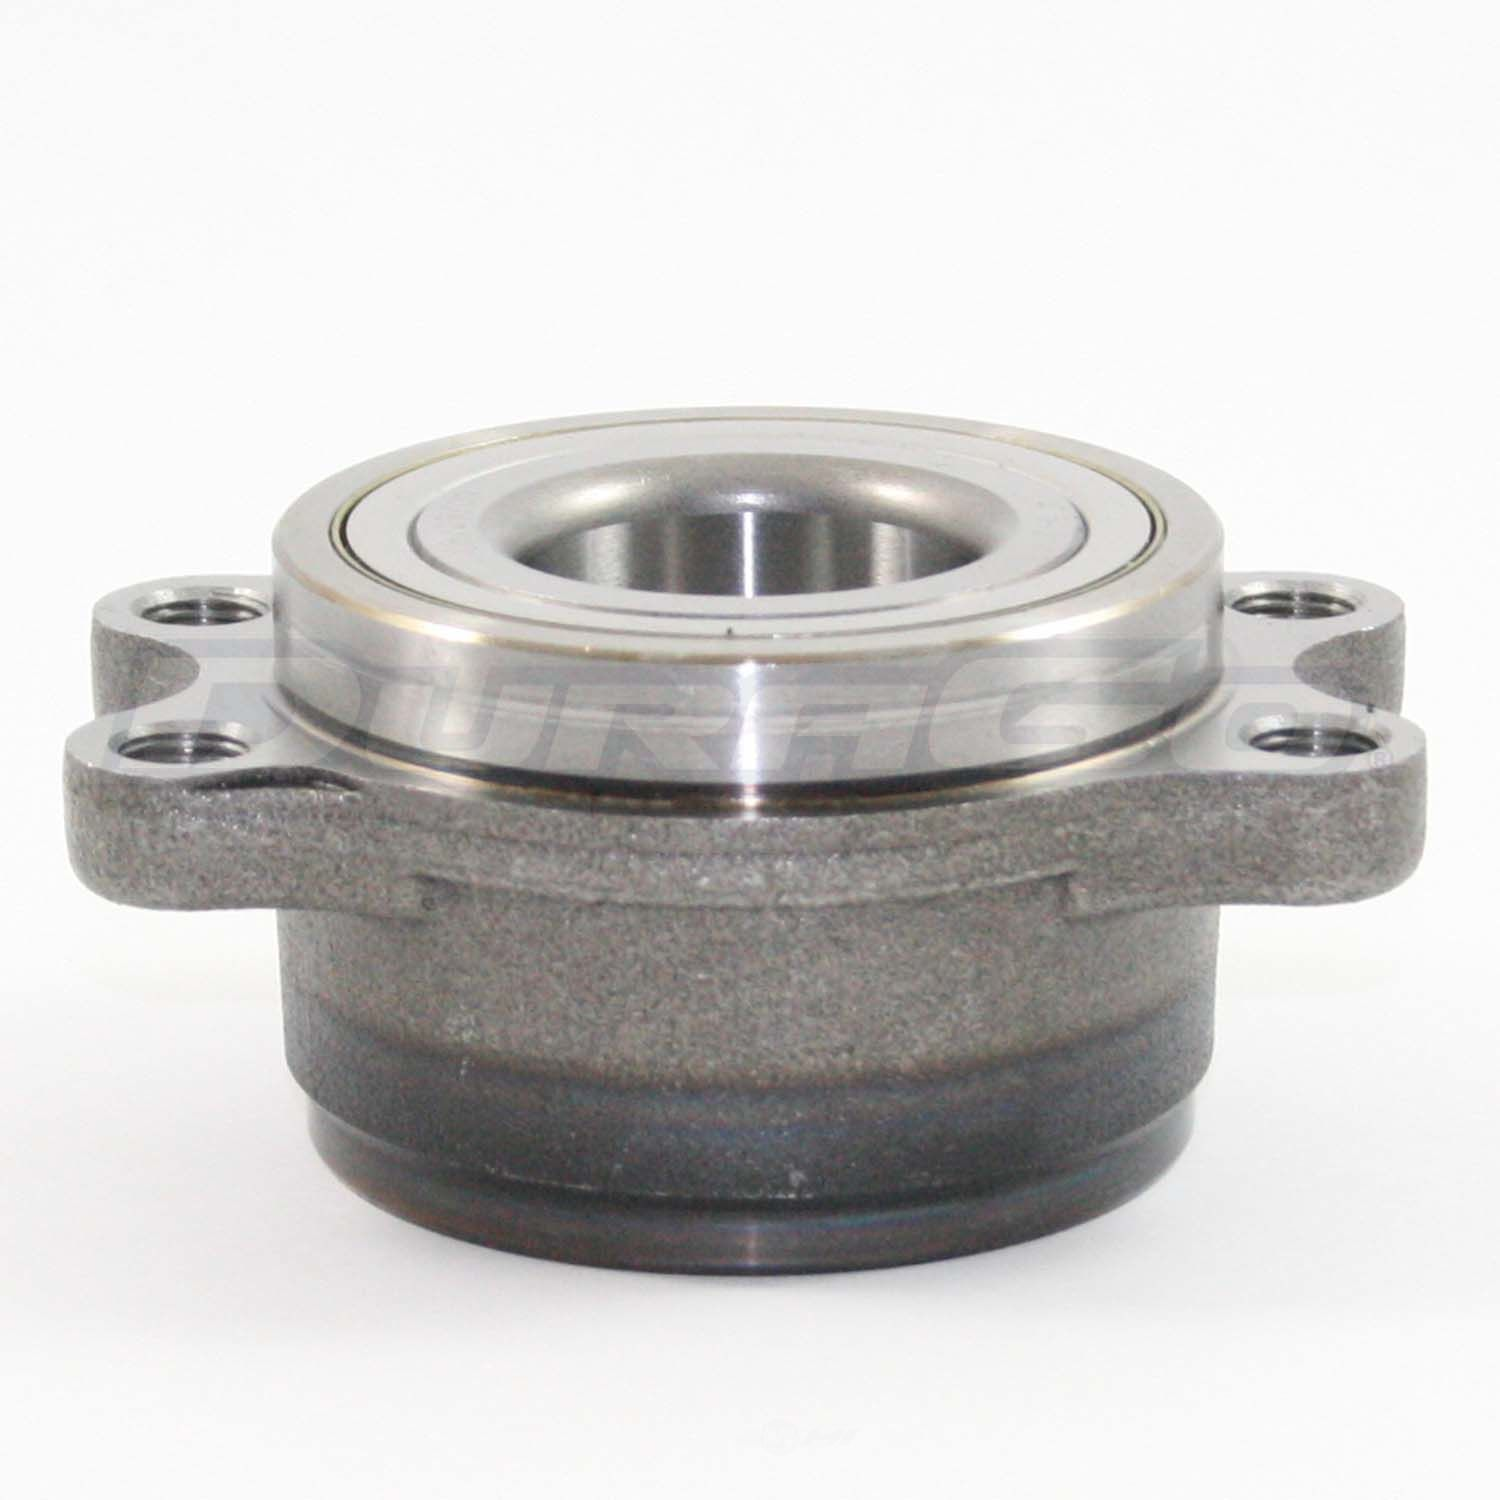 DURAGO - Wheel Bearing Assembly - D48 295-12183